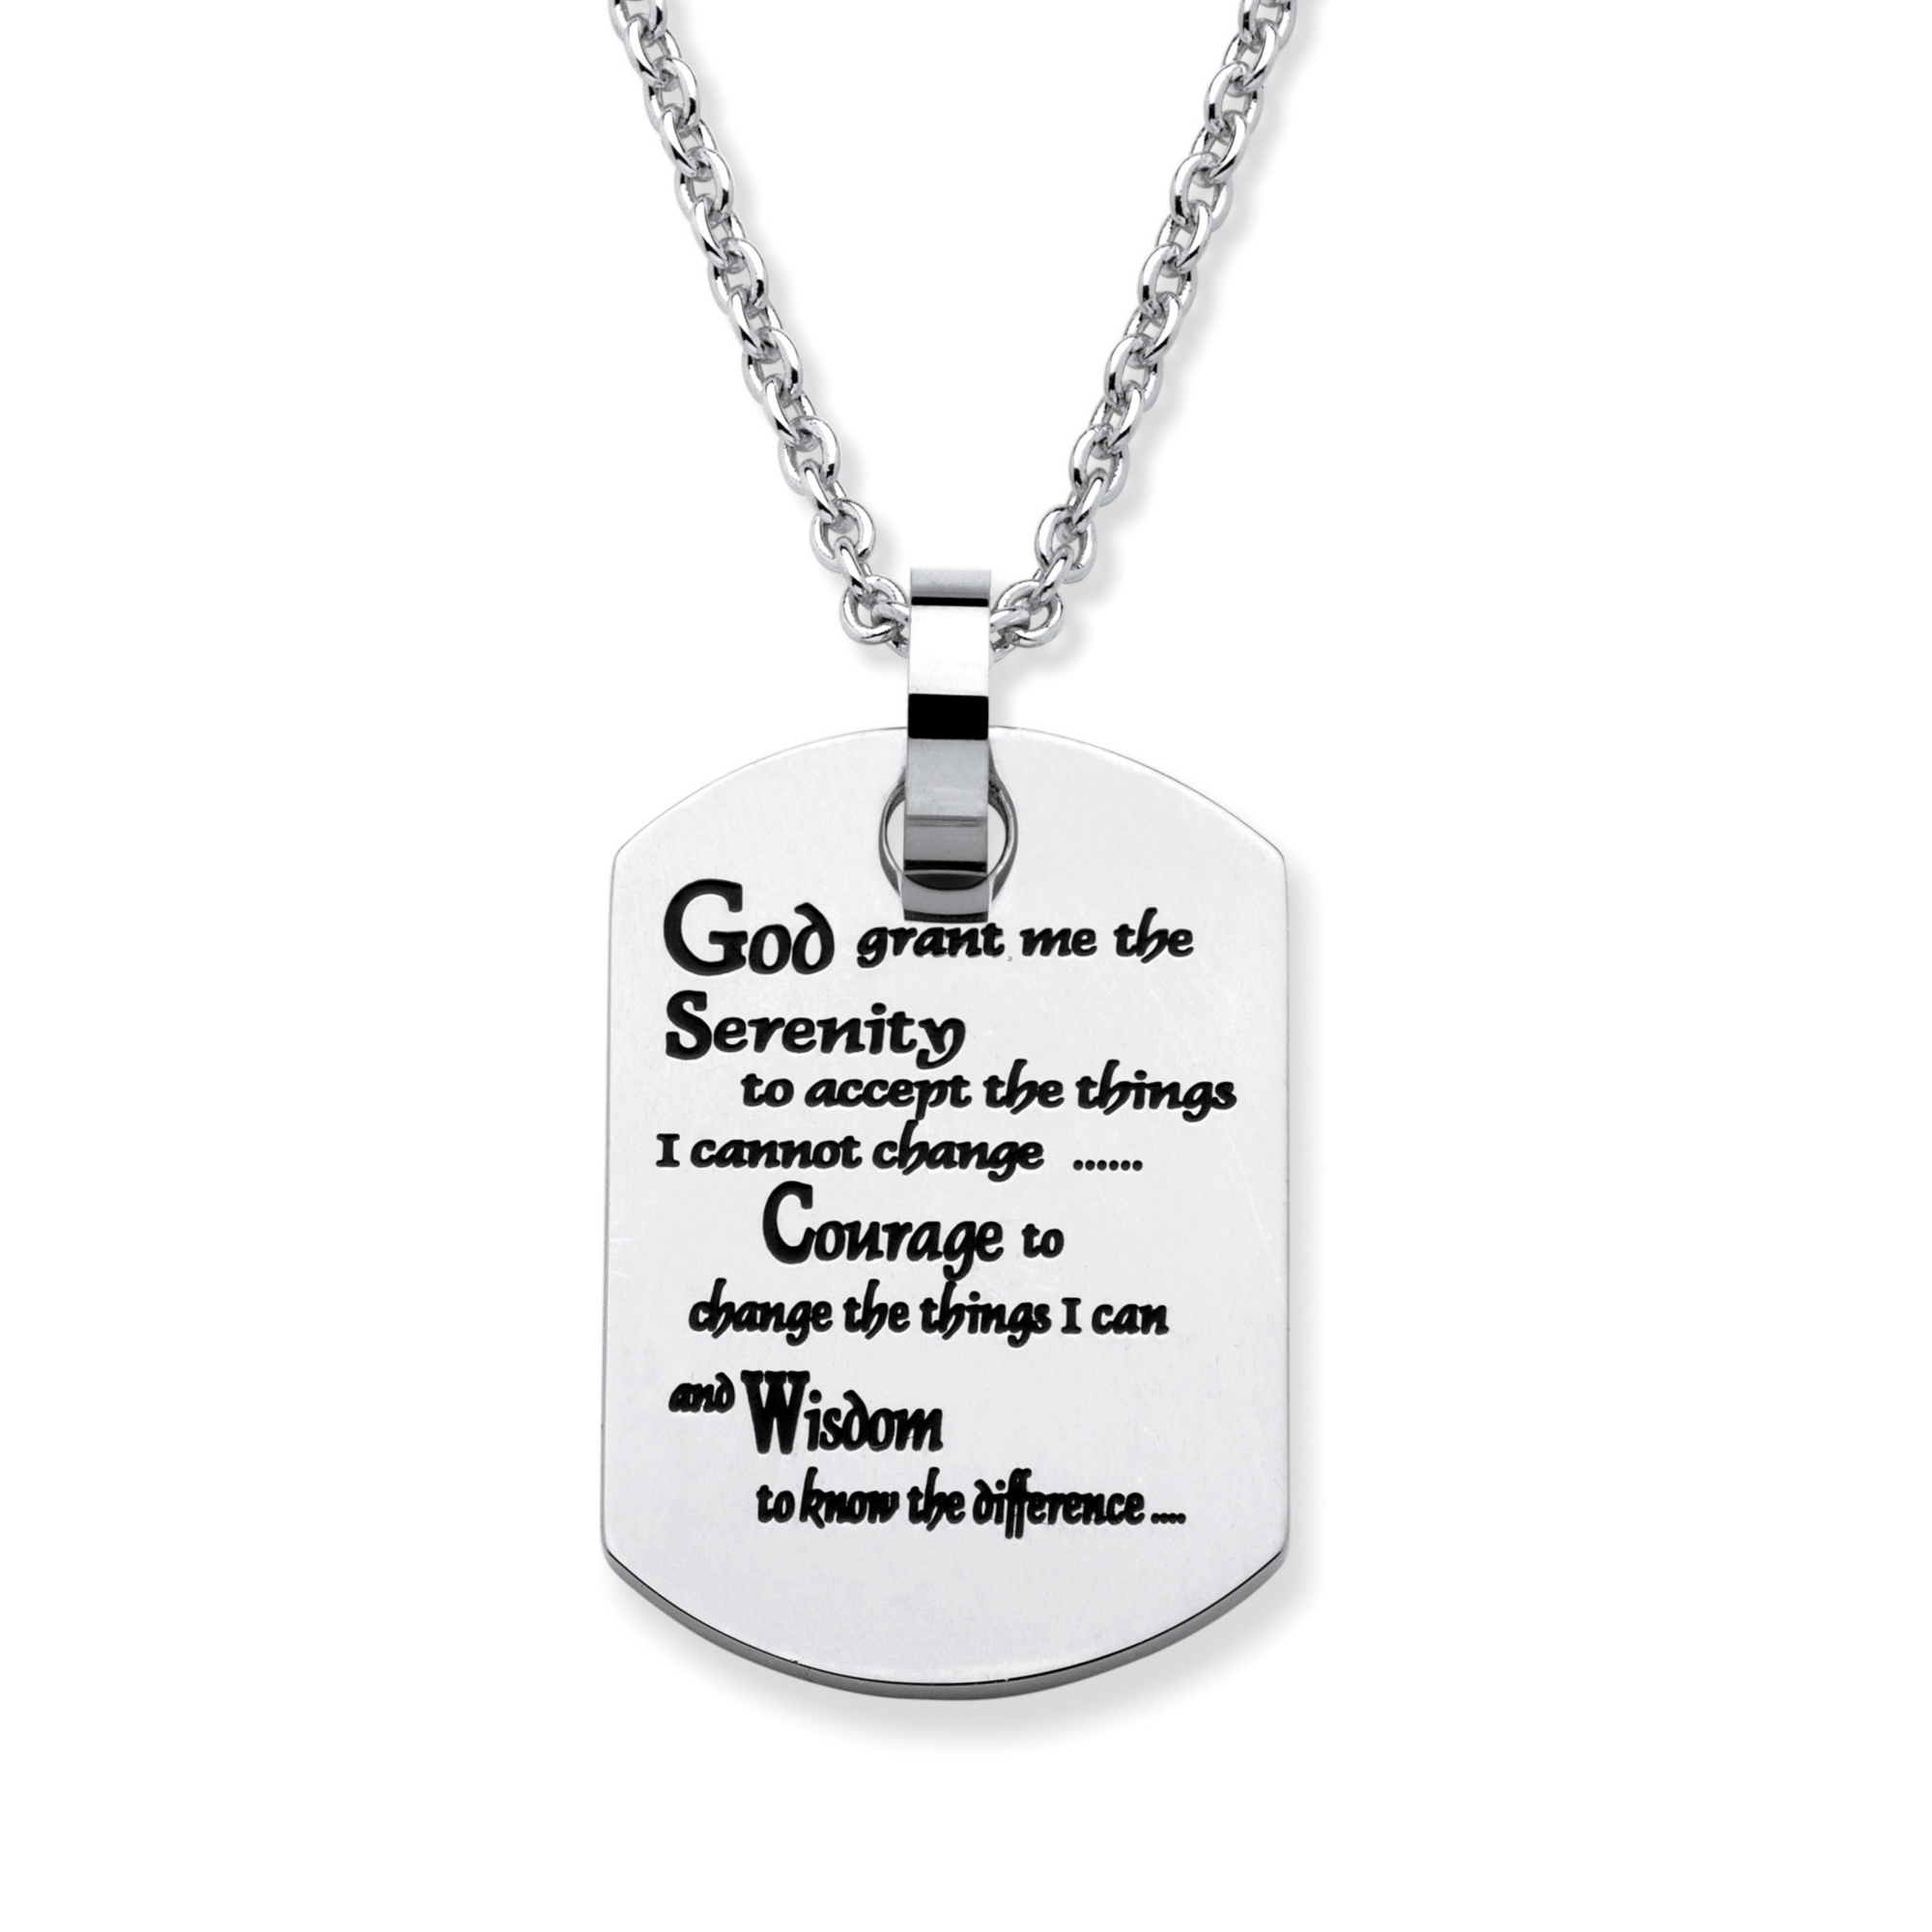 pendant prayer pendants necklace magnifier serenity ribbon